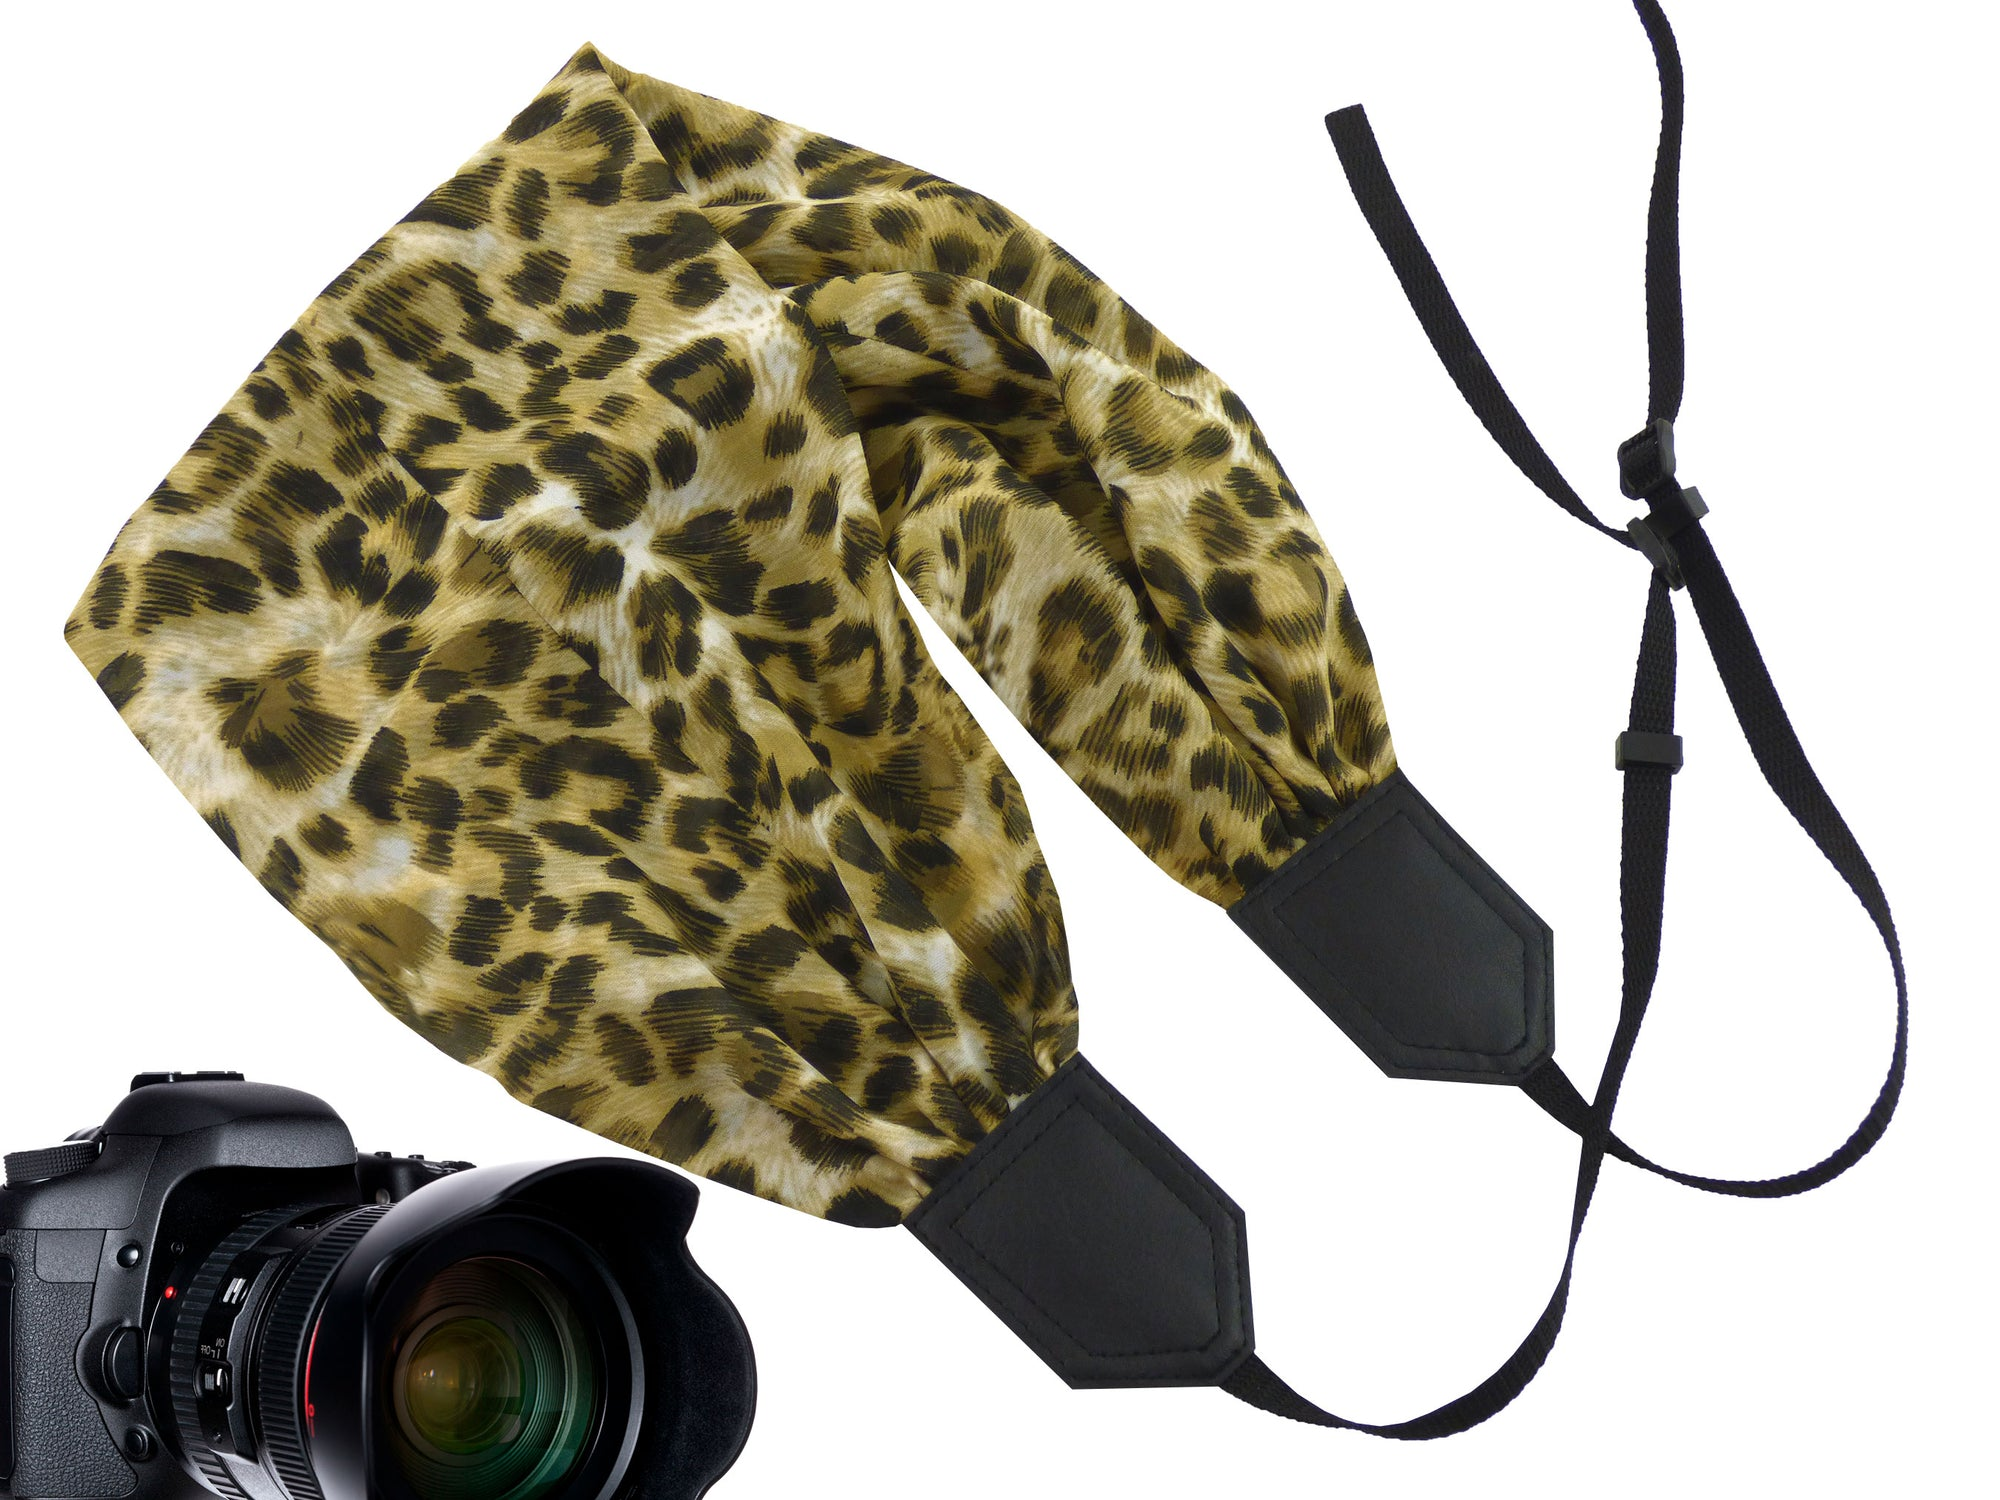 Scarf camera strap with Jaguar design. Best gift camera accessory for women.